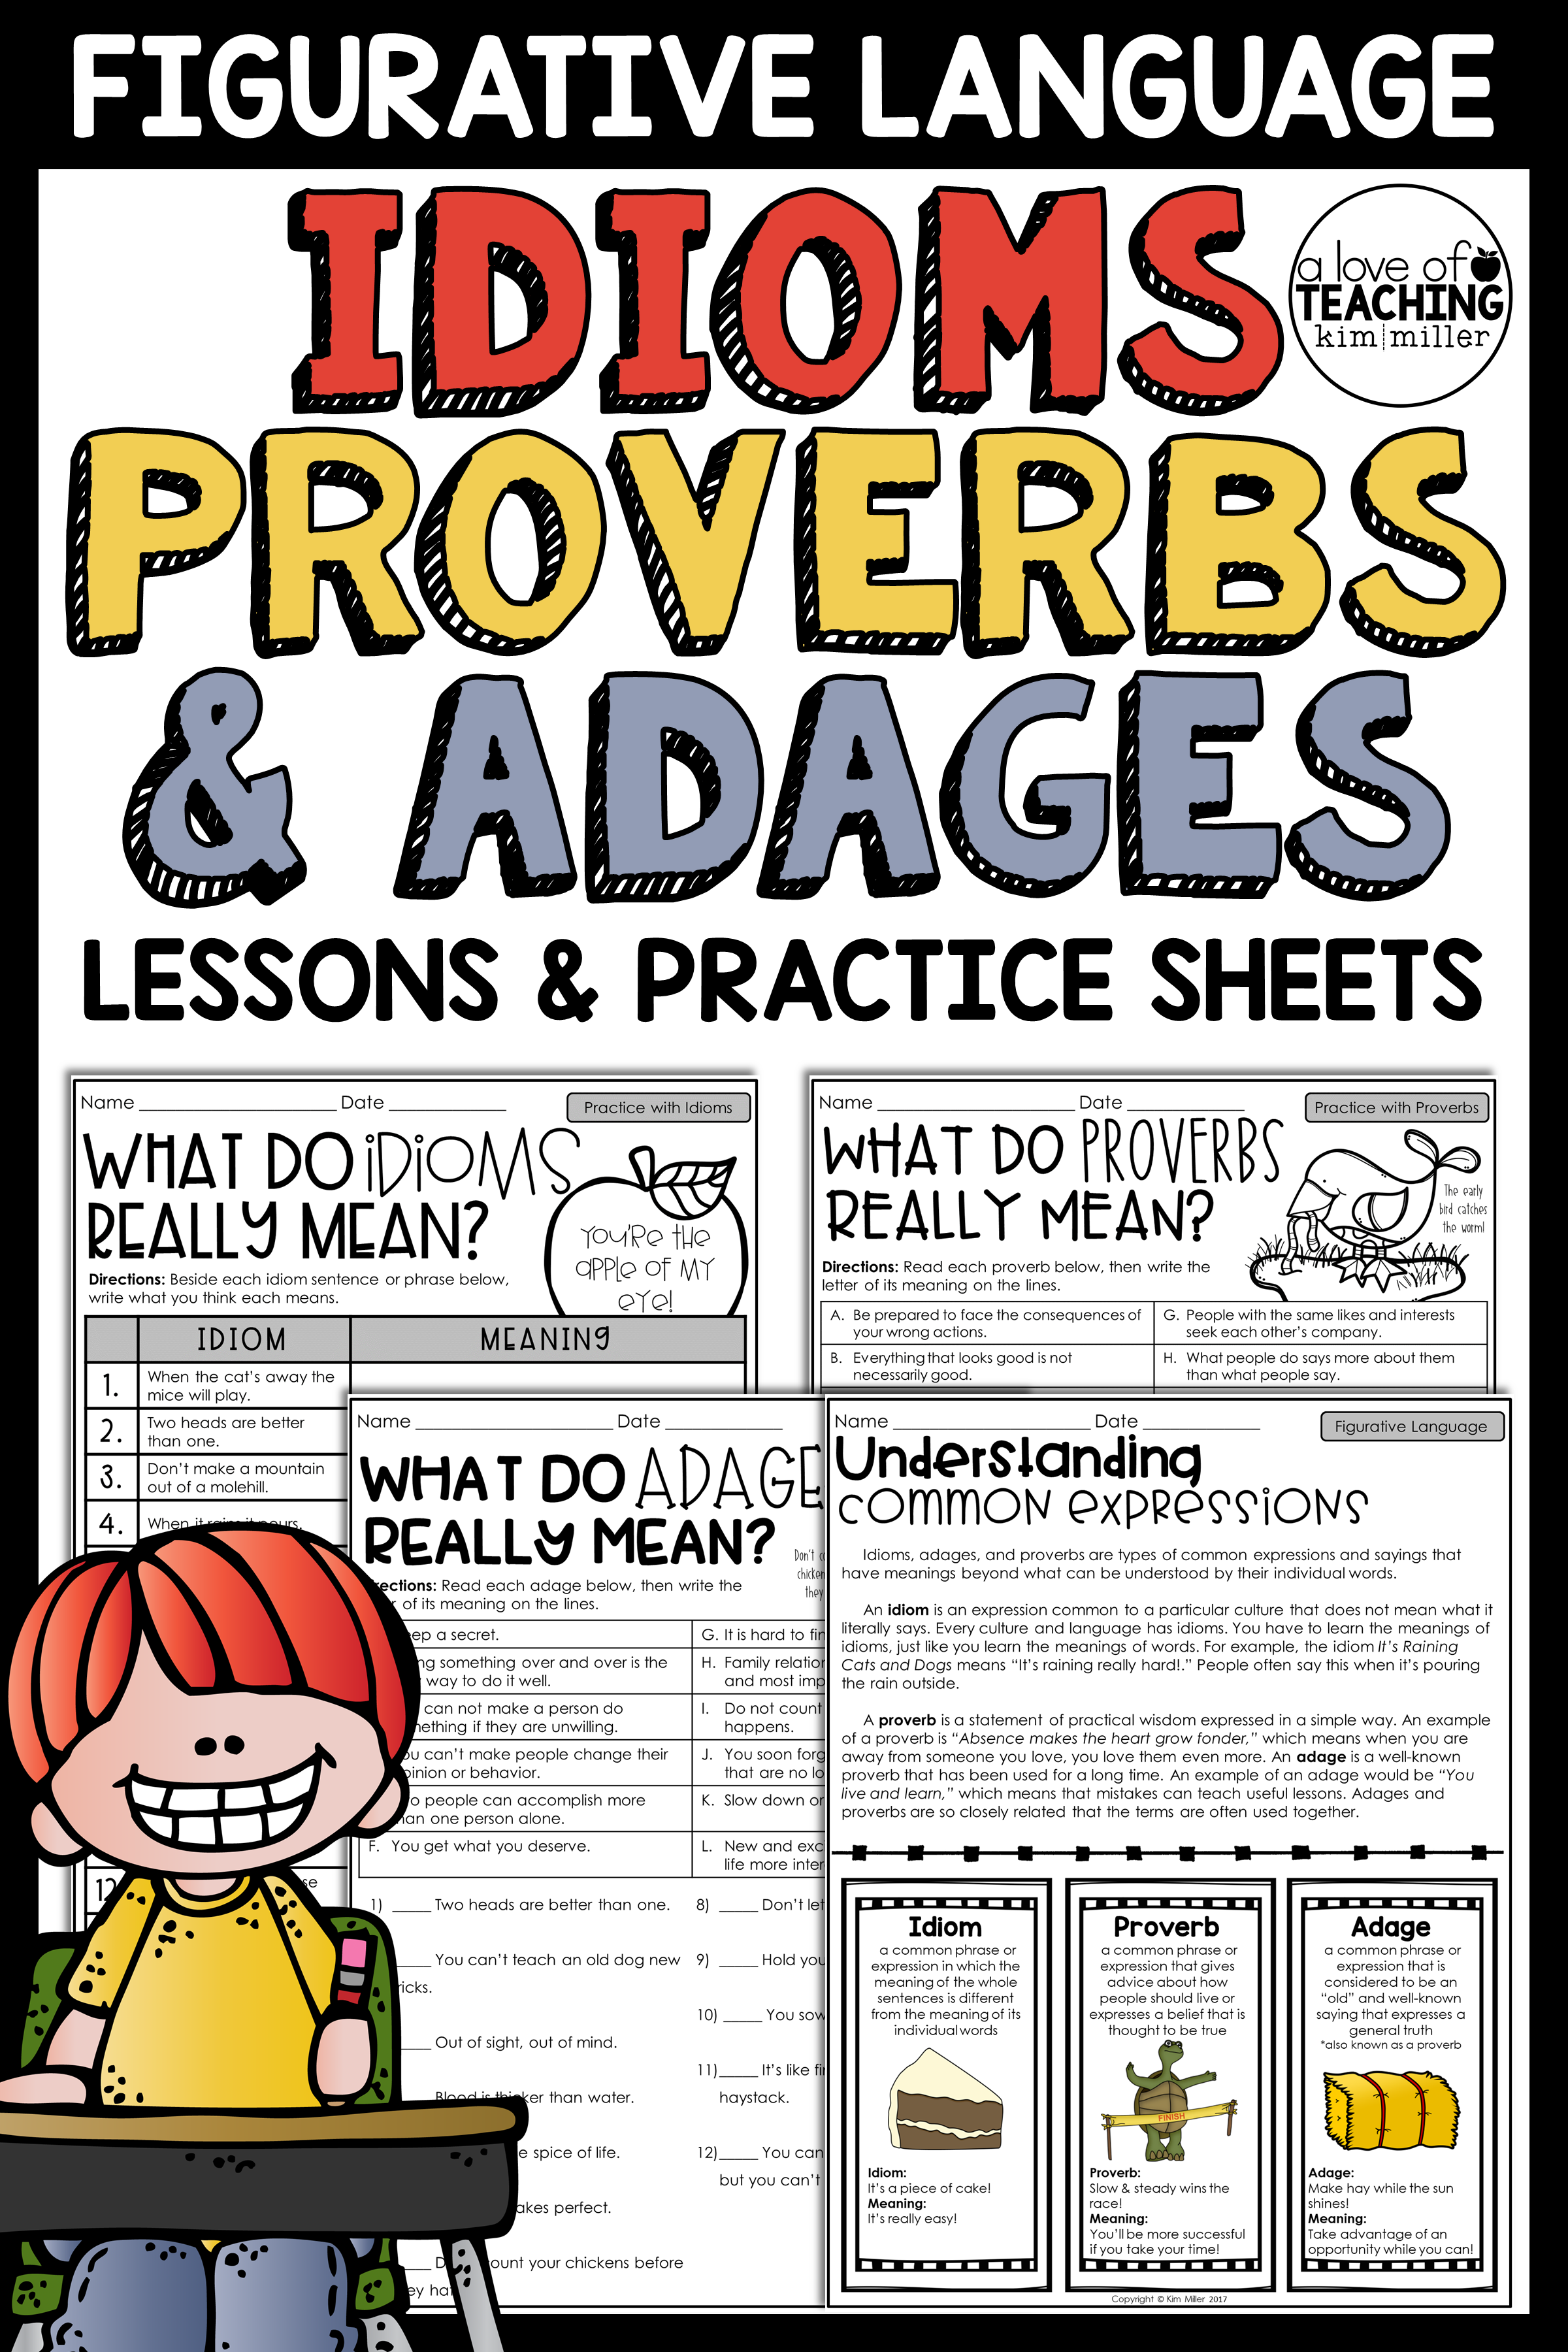 Idioms Proverbs And Adages Practice Worksheets